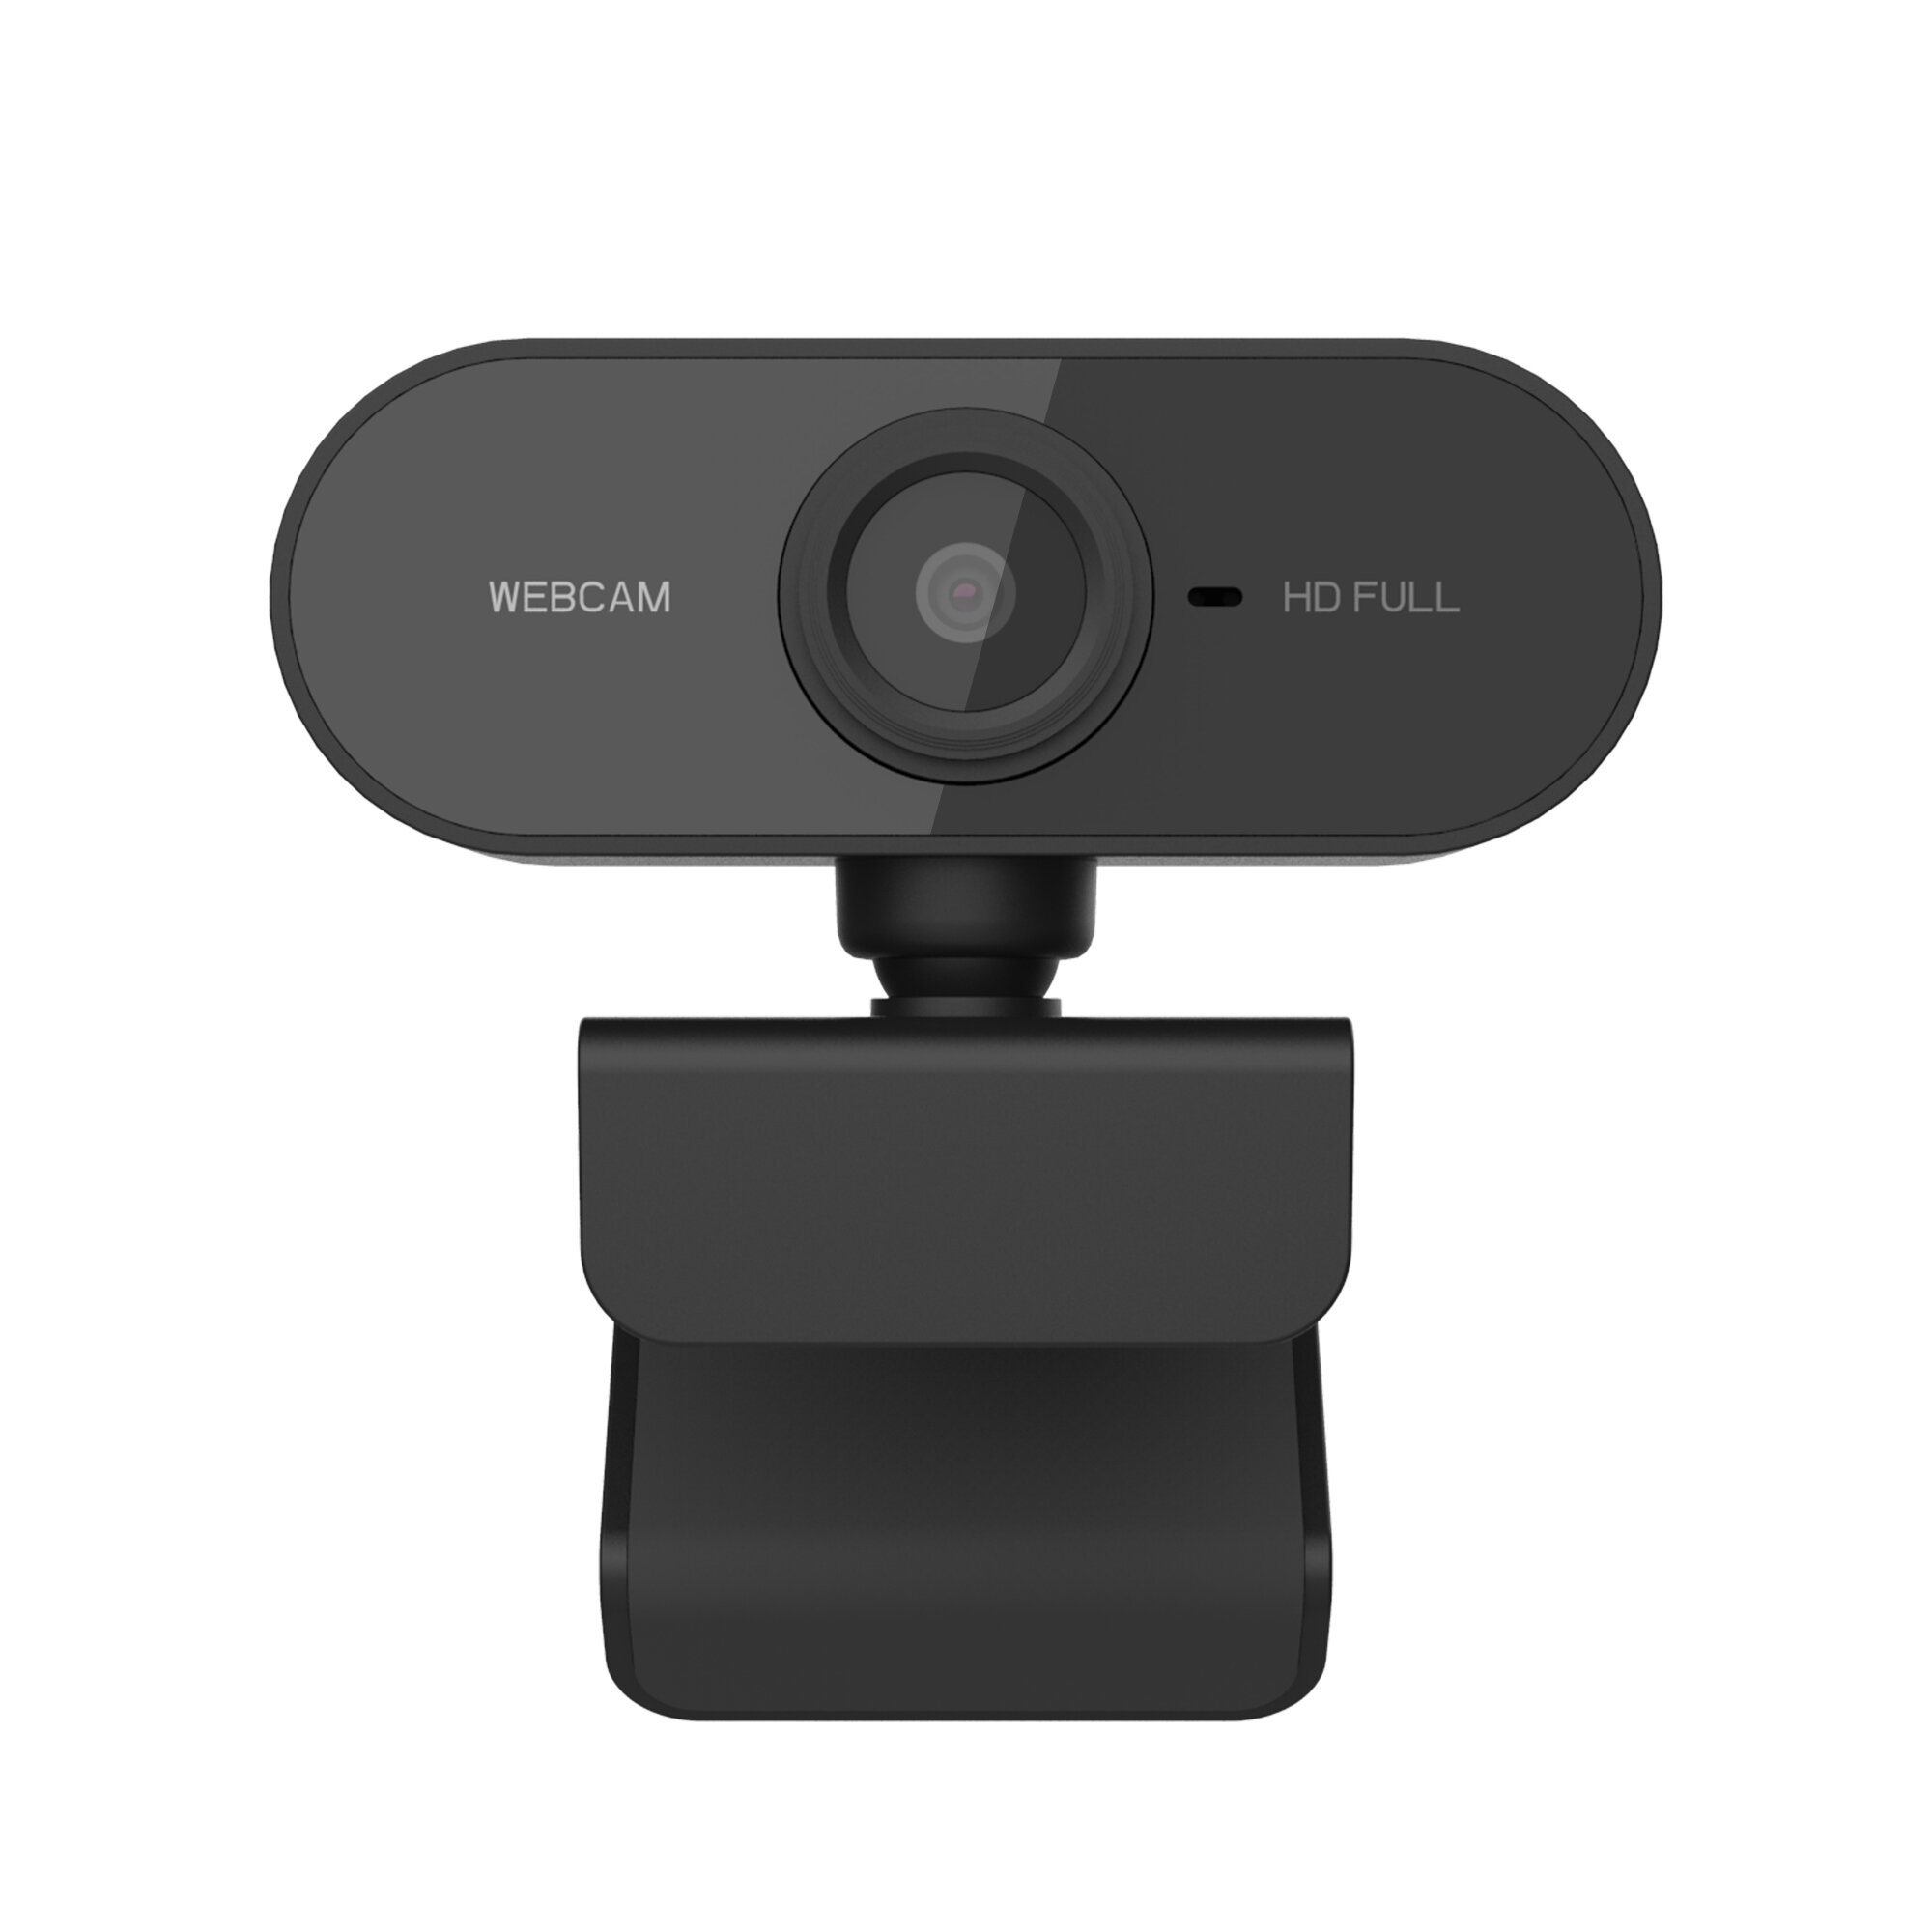 PC-01 HD 1080P Webcam 10 Million Pixels CMOS 30FPS USB 2.0 Built-in Microphone Network Teaching HD Camera for Laptop PC